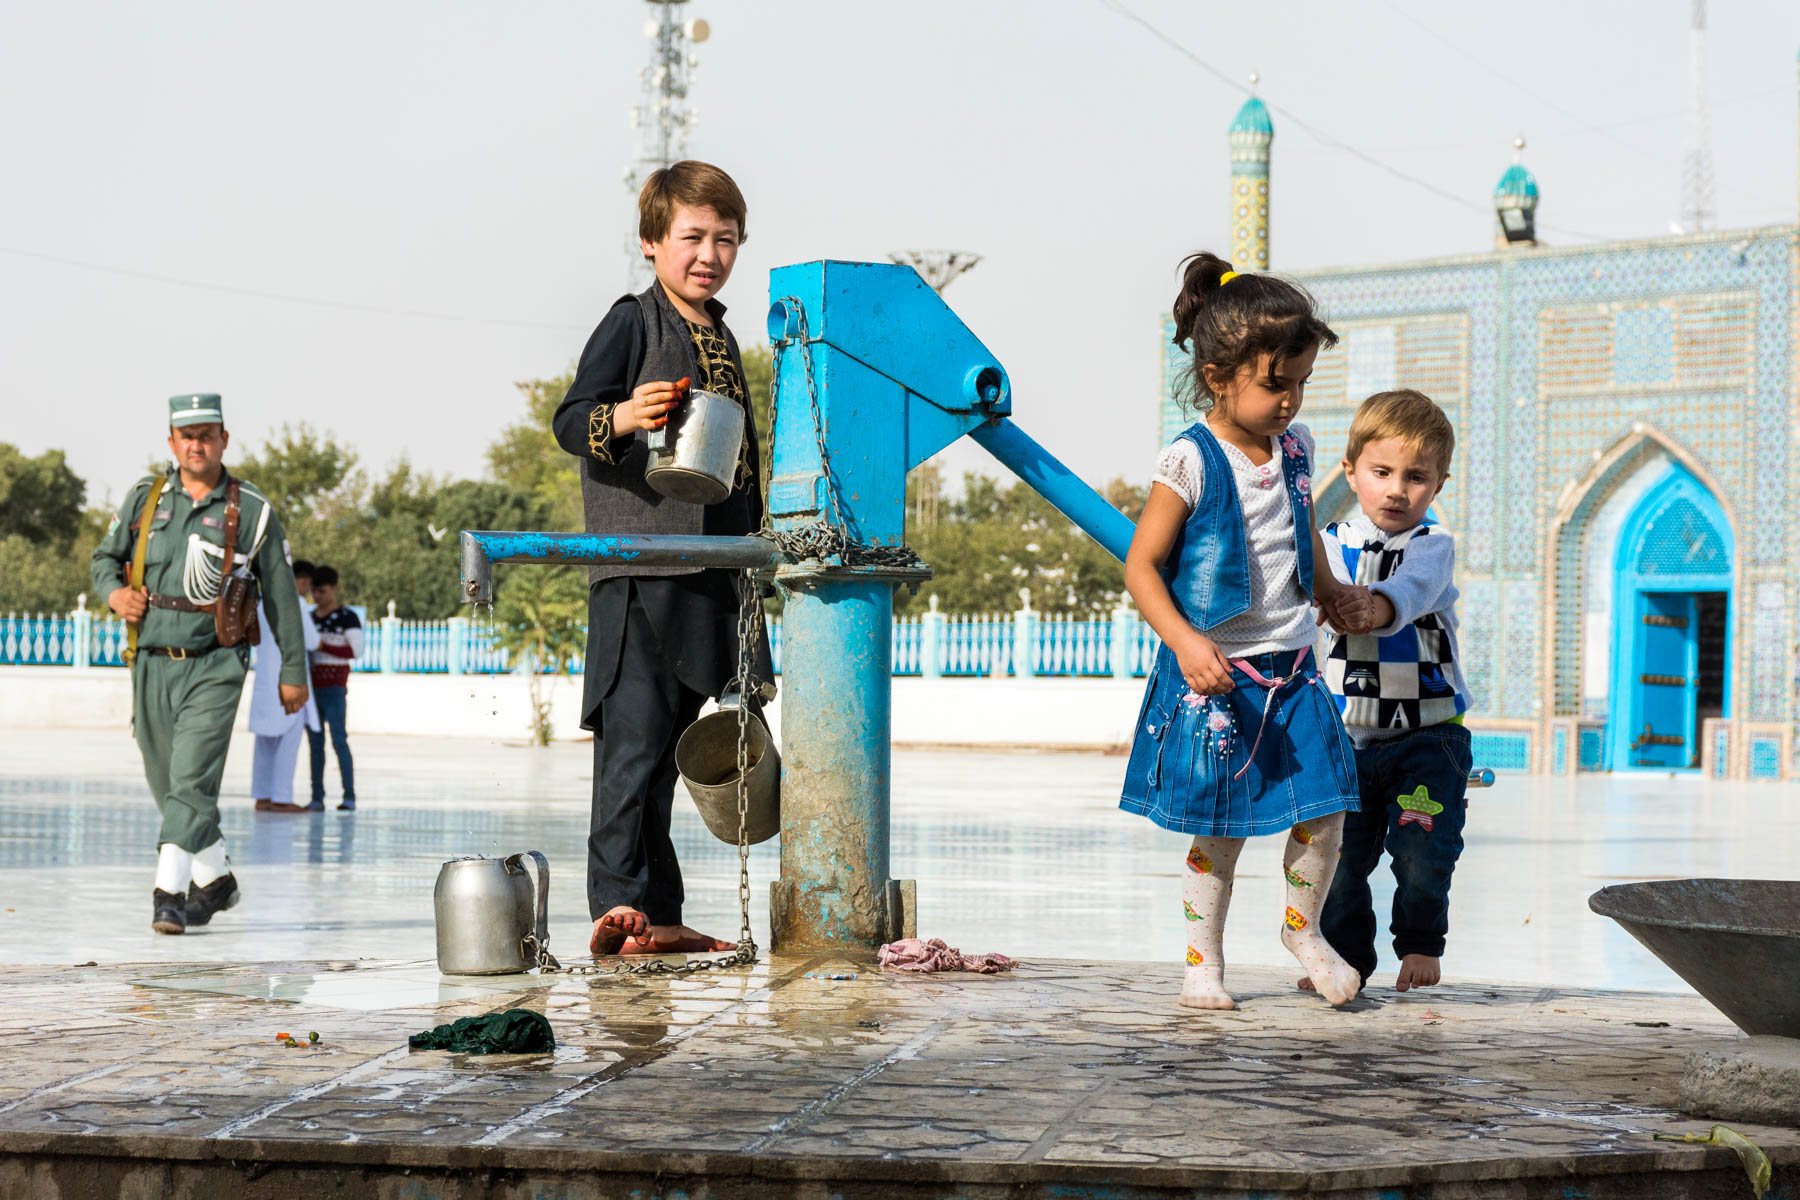 Photos of Mazar-i-Sharif, Afghanistan - Children at the Shrine to Hazrat Ali - Lost With Purpose